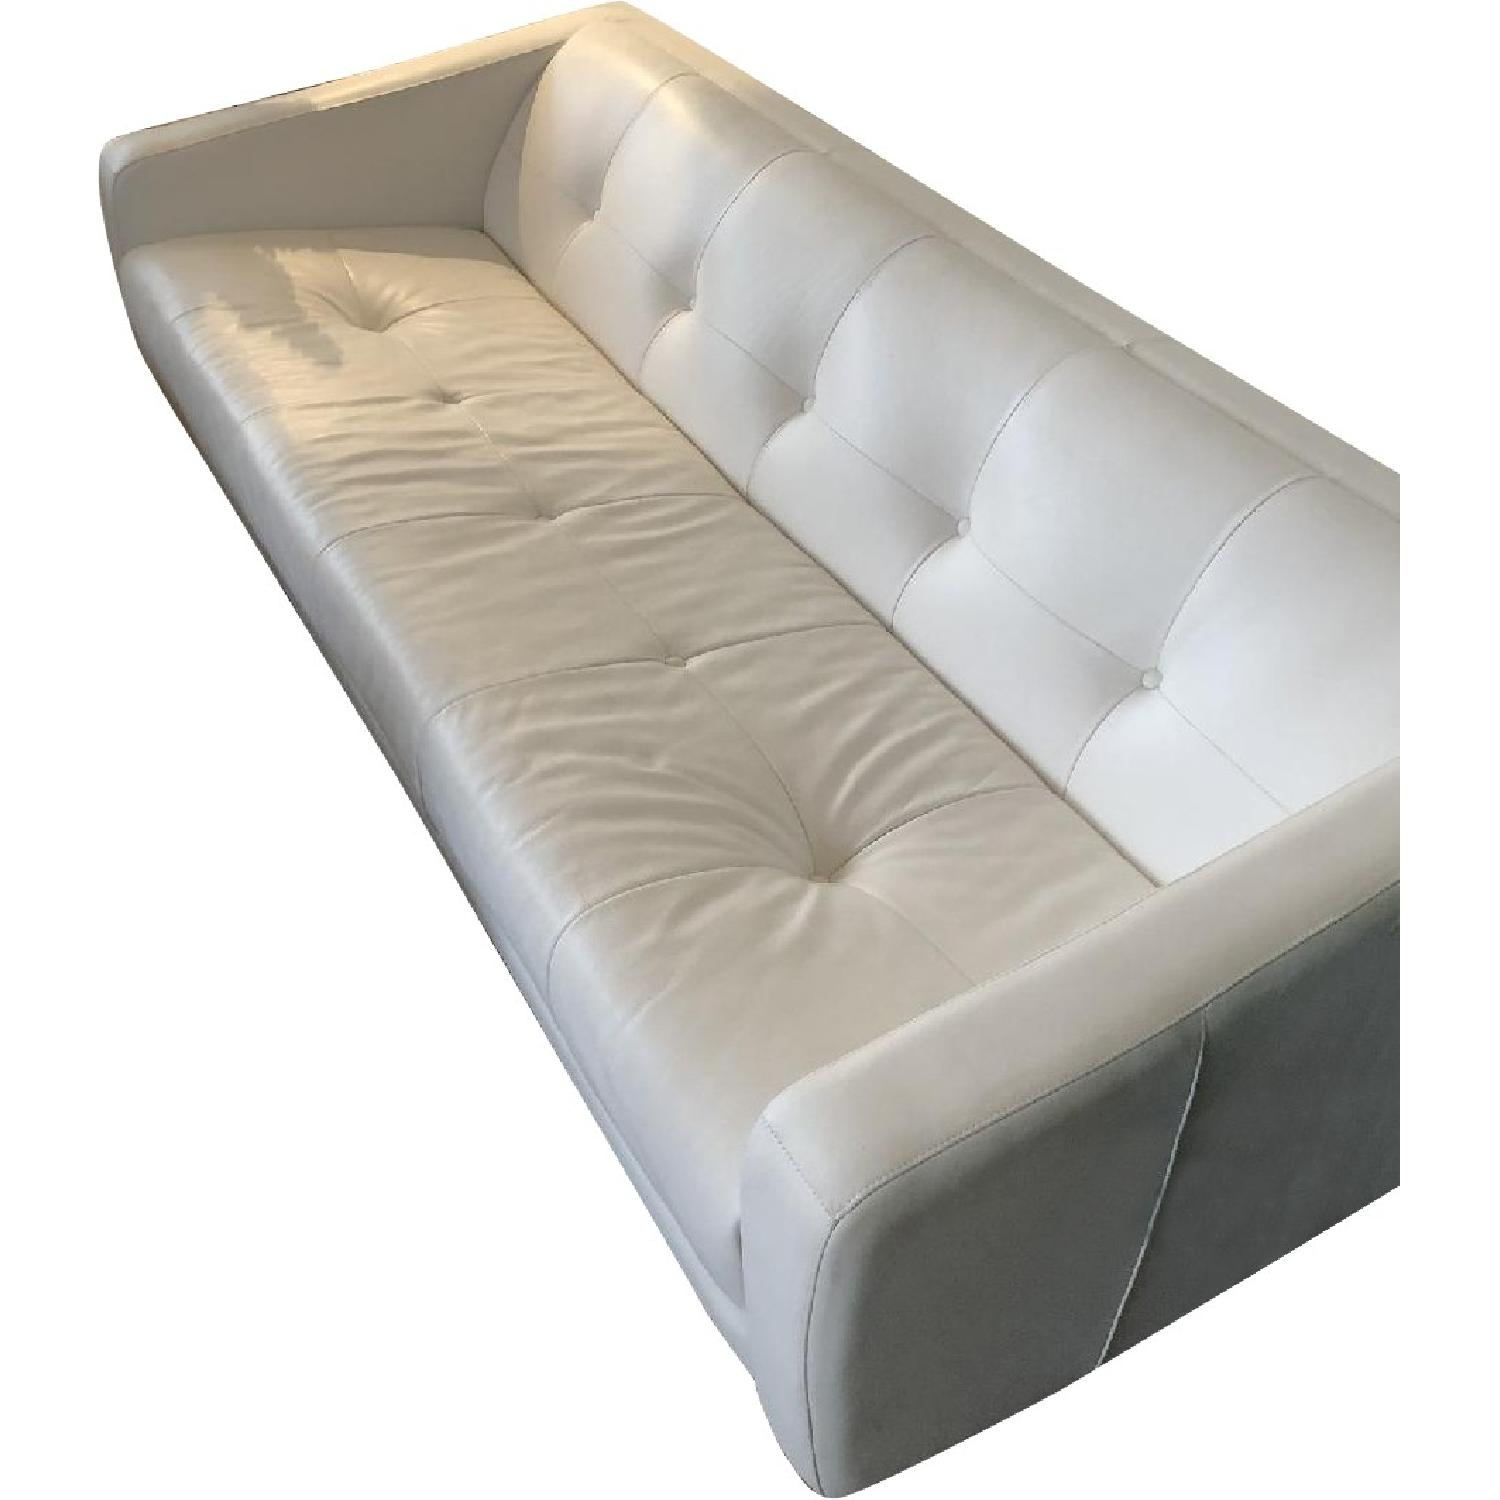 white tufted leather sofa best rated futon bed space interiors custom aptdeco per set of 2